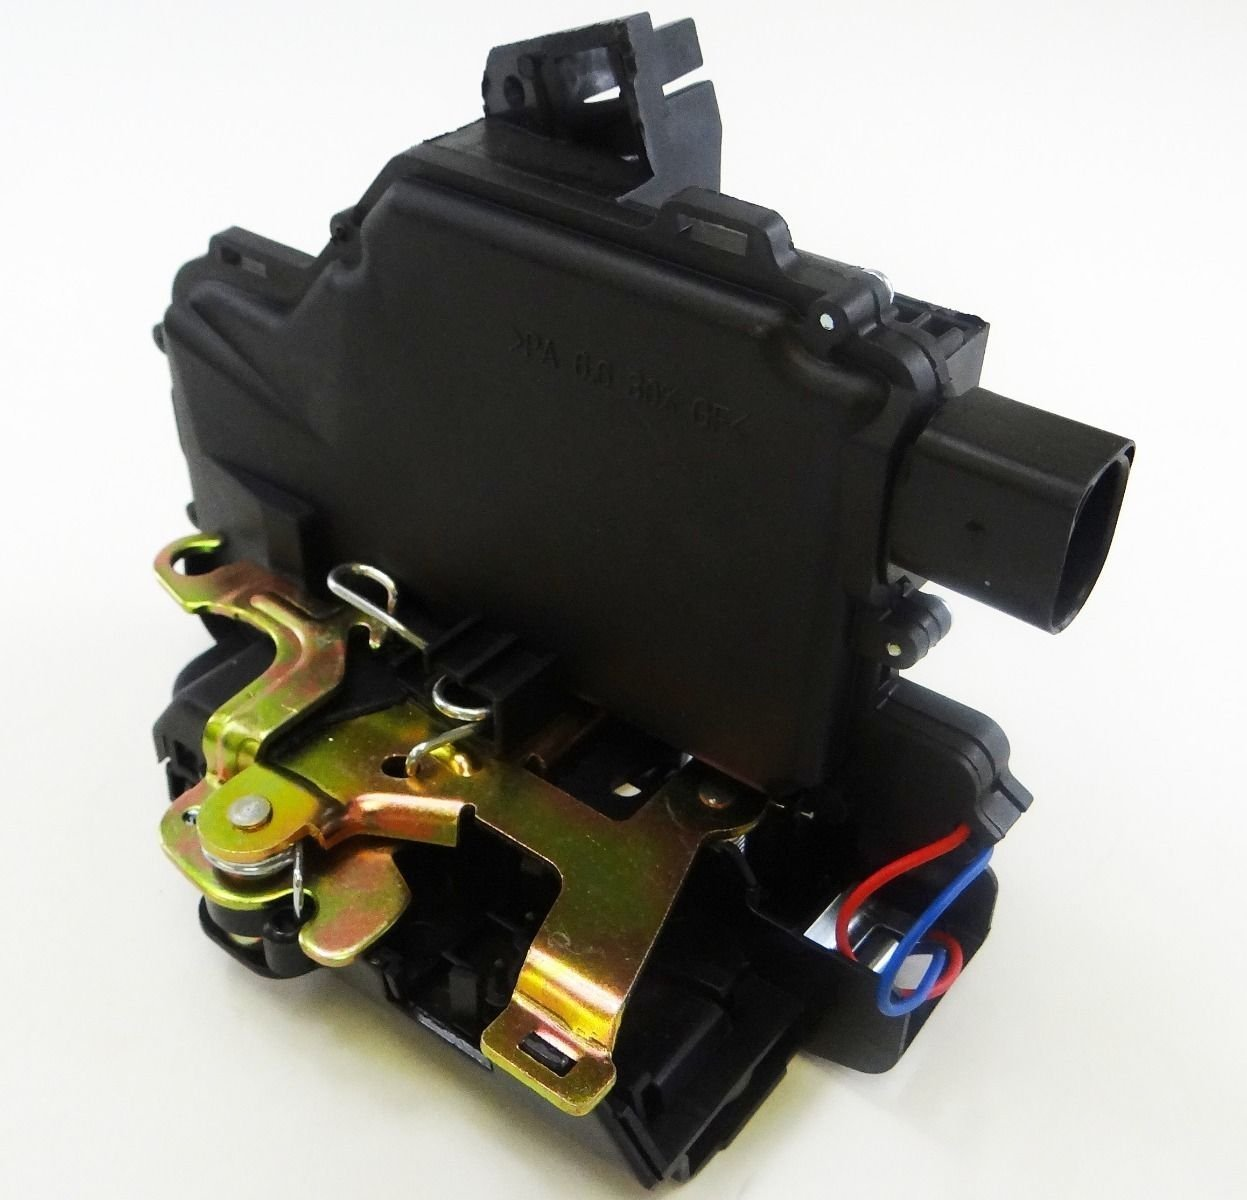 New Door Lock Actuator & Latch Front Left Driver Side For VW Jetta Passat Golf by Aftermarket (Image #3)